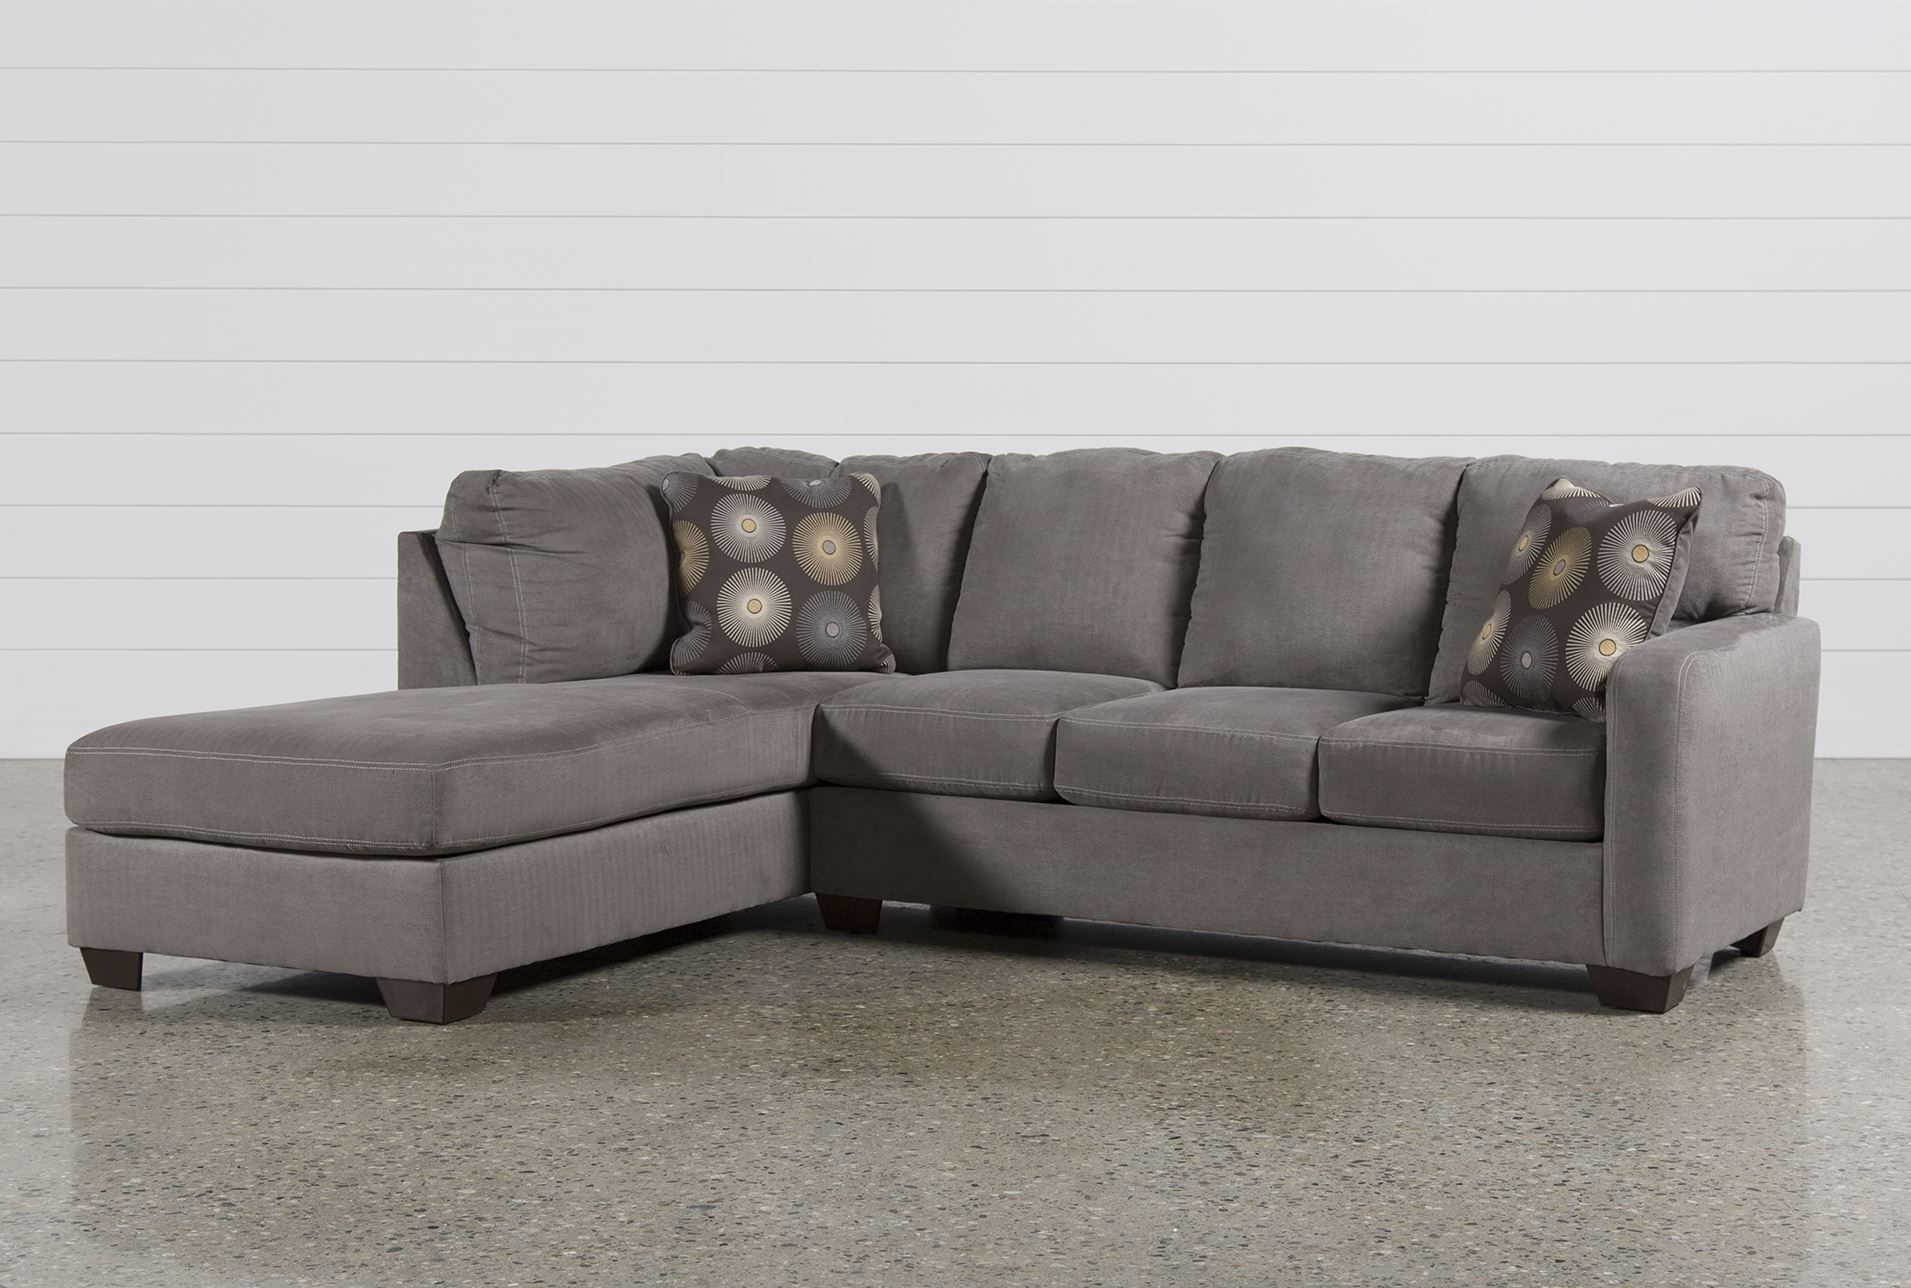 Zella Charcoal 2 Piece Sectional W/laf Chaise – Signature With Regard To Aspen 2 Piece Sectionals With Laf Chaise (Photo 1 of 25)